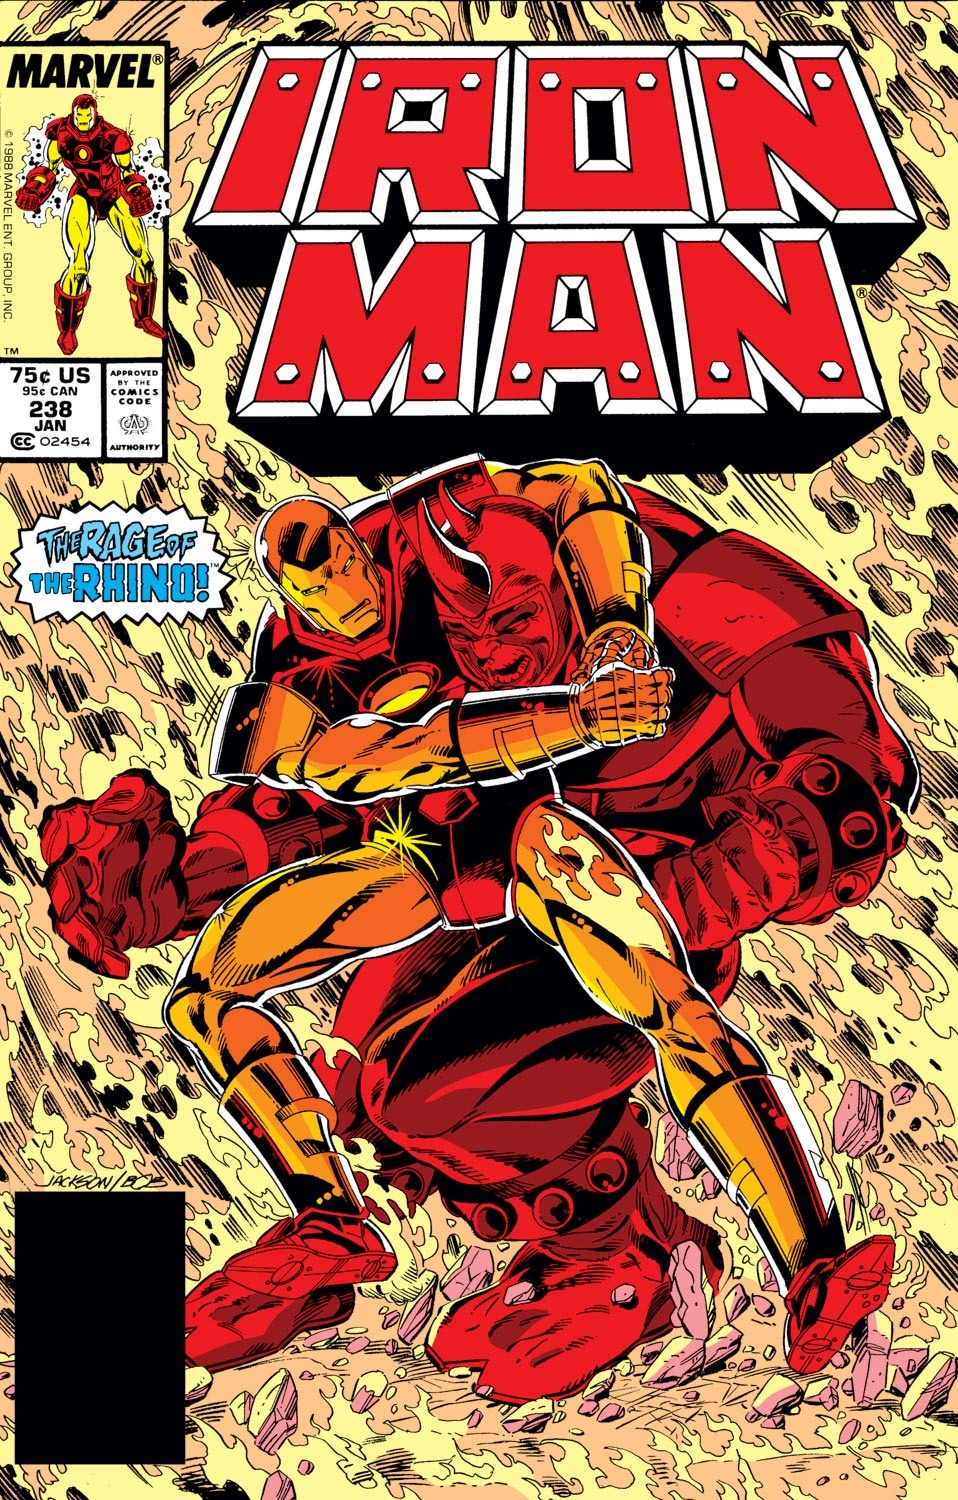 Iron man vol 1 238 marvel database fandom powered by wikia - Iron man 1 images ...